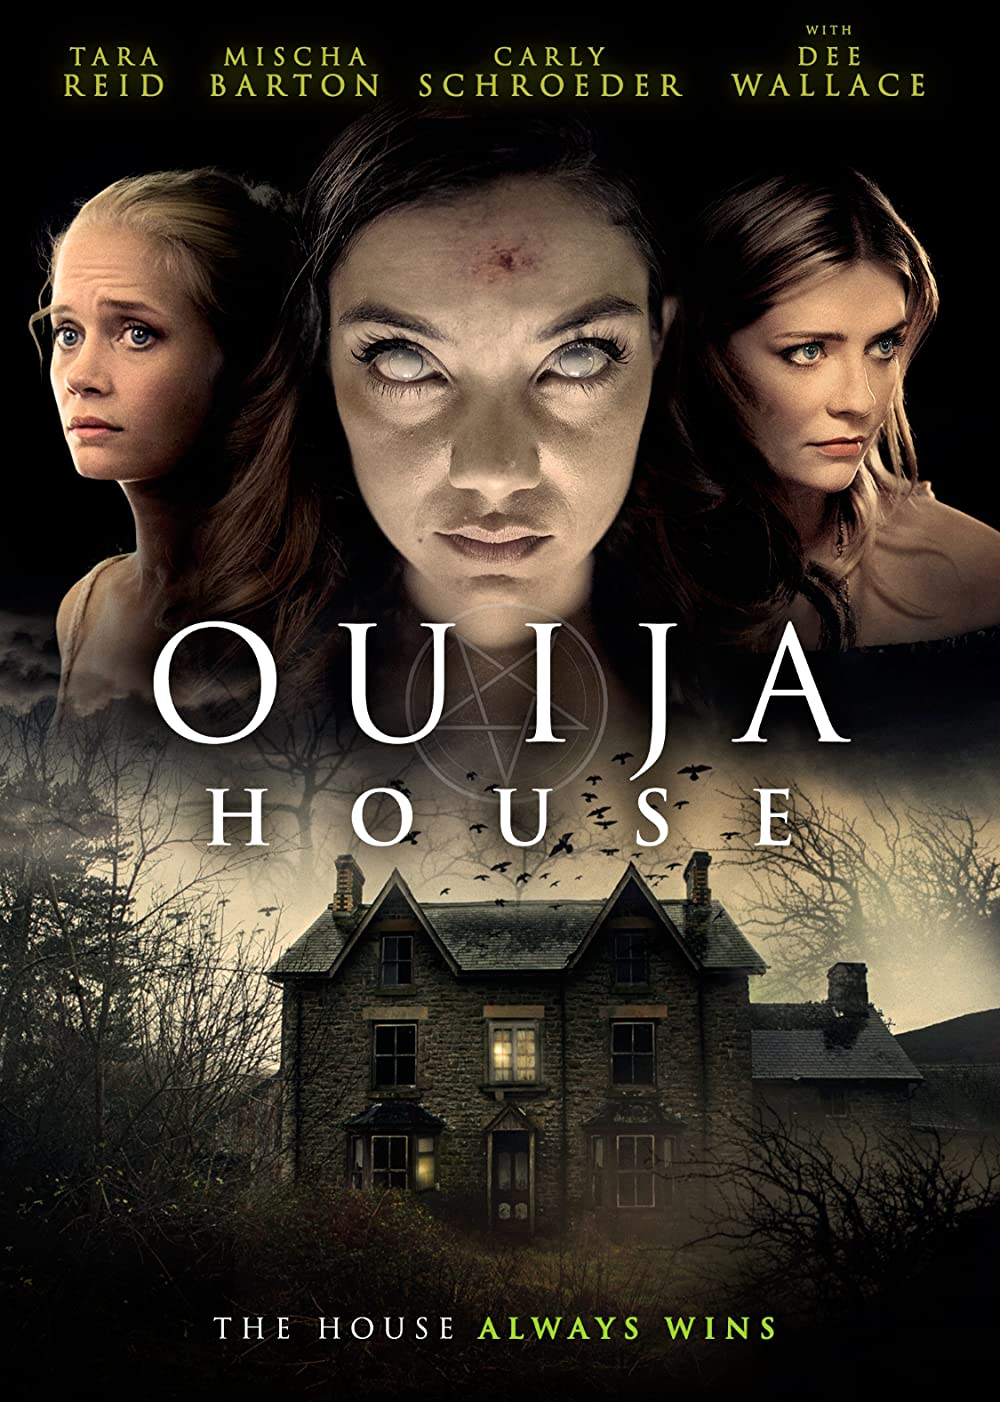 Ouija House 2018 Hindi Dual Audio 1080p BluRay ESubs 1.64GB Download